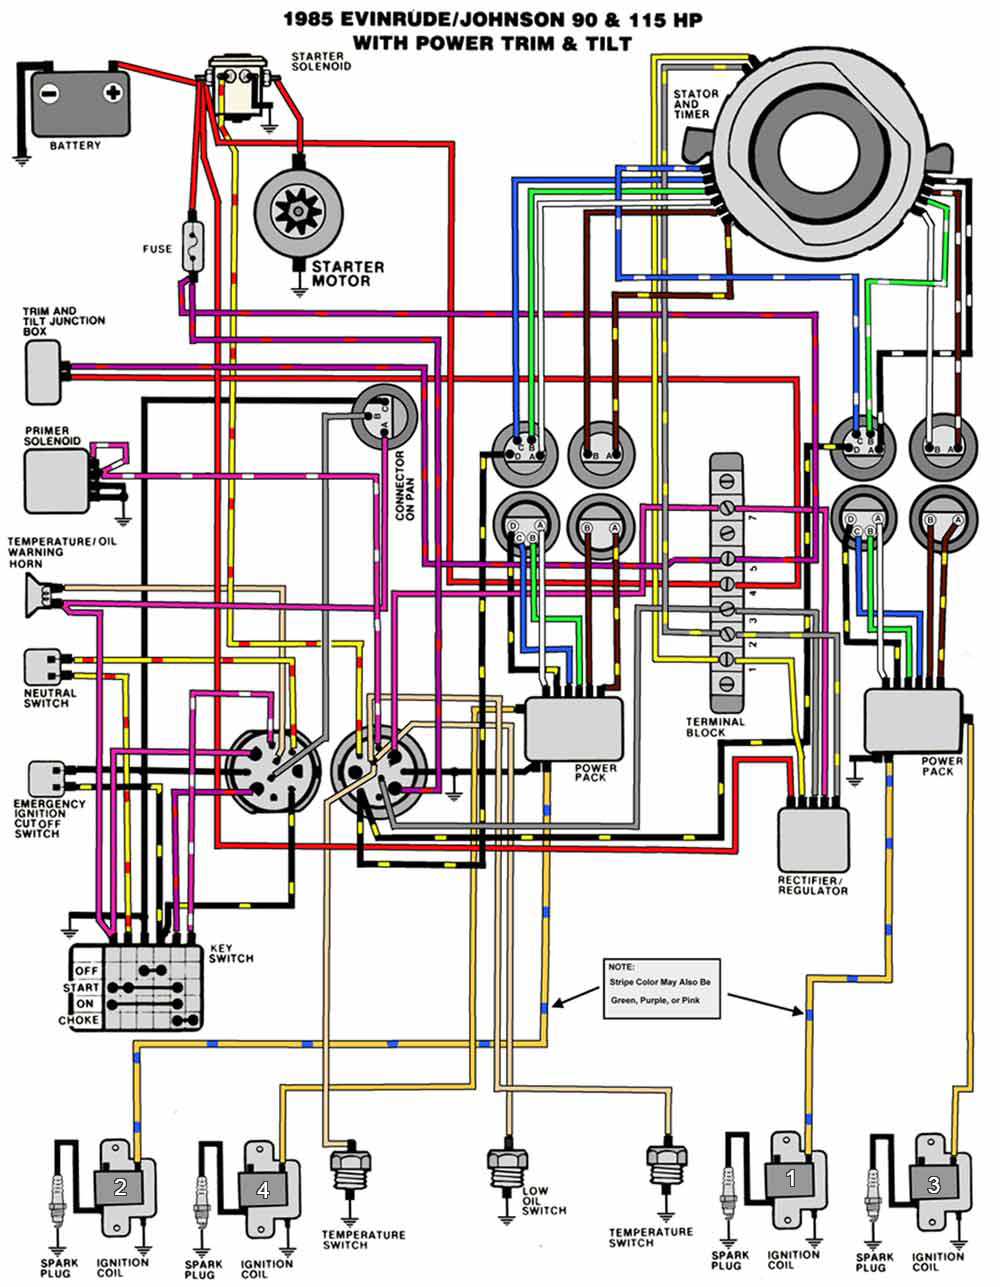 1985_90_115TnT evinrude etec wiring diagram evinrude e tec wire color \u2022 wiring mercury outboard 115 hp diagrams at bayanpartner.co